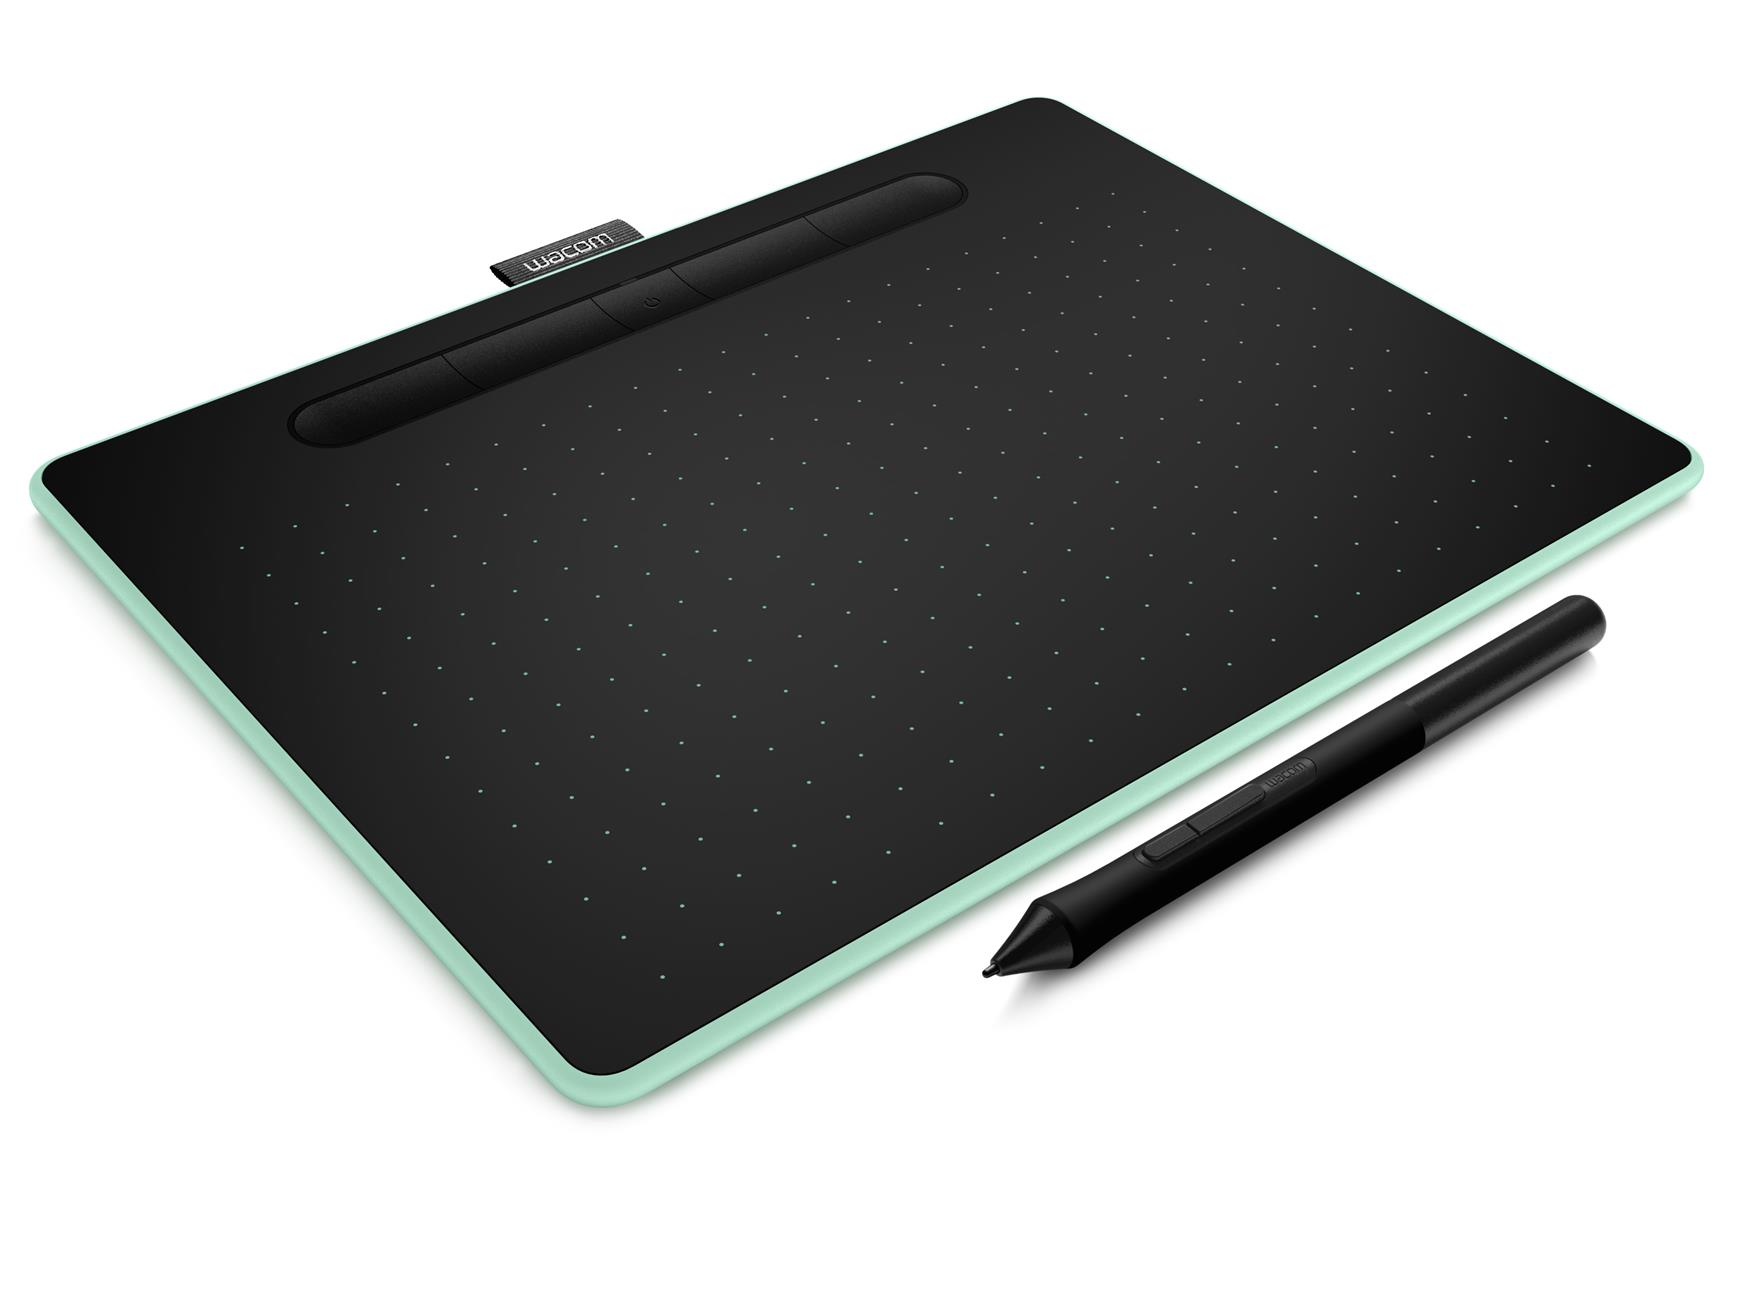 Wacom Intuos M Bluetooth Graphic Pen Tablet Pistachio CTL-6100WL/E0-CX